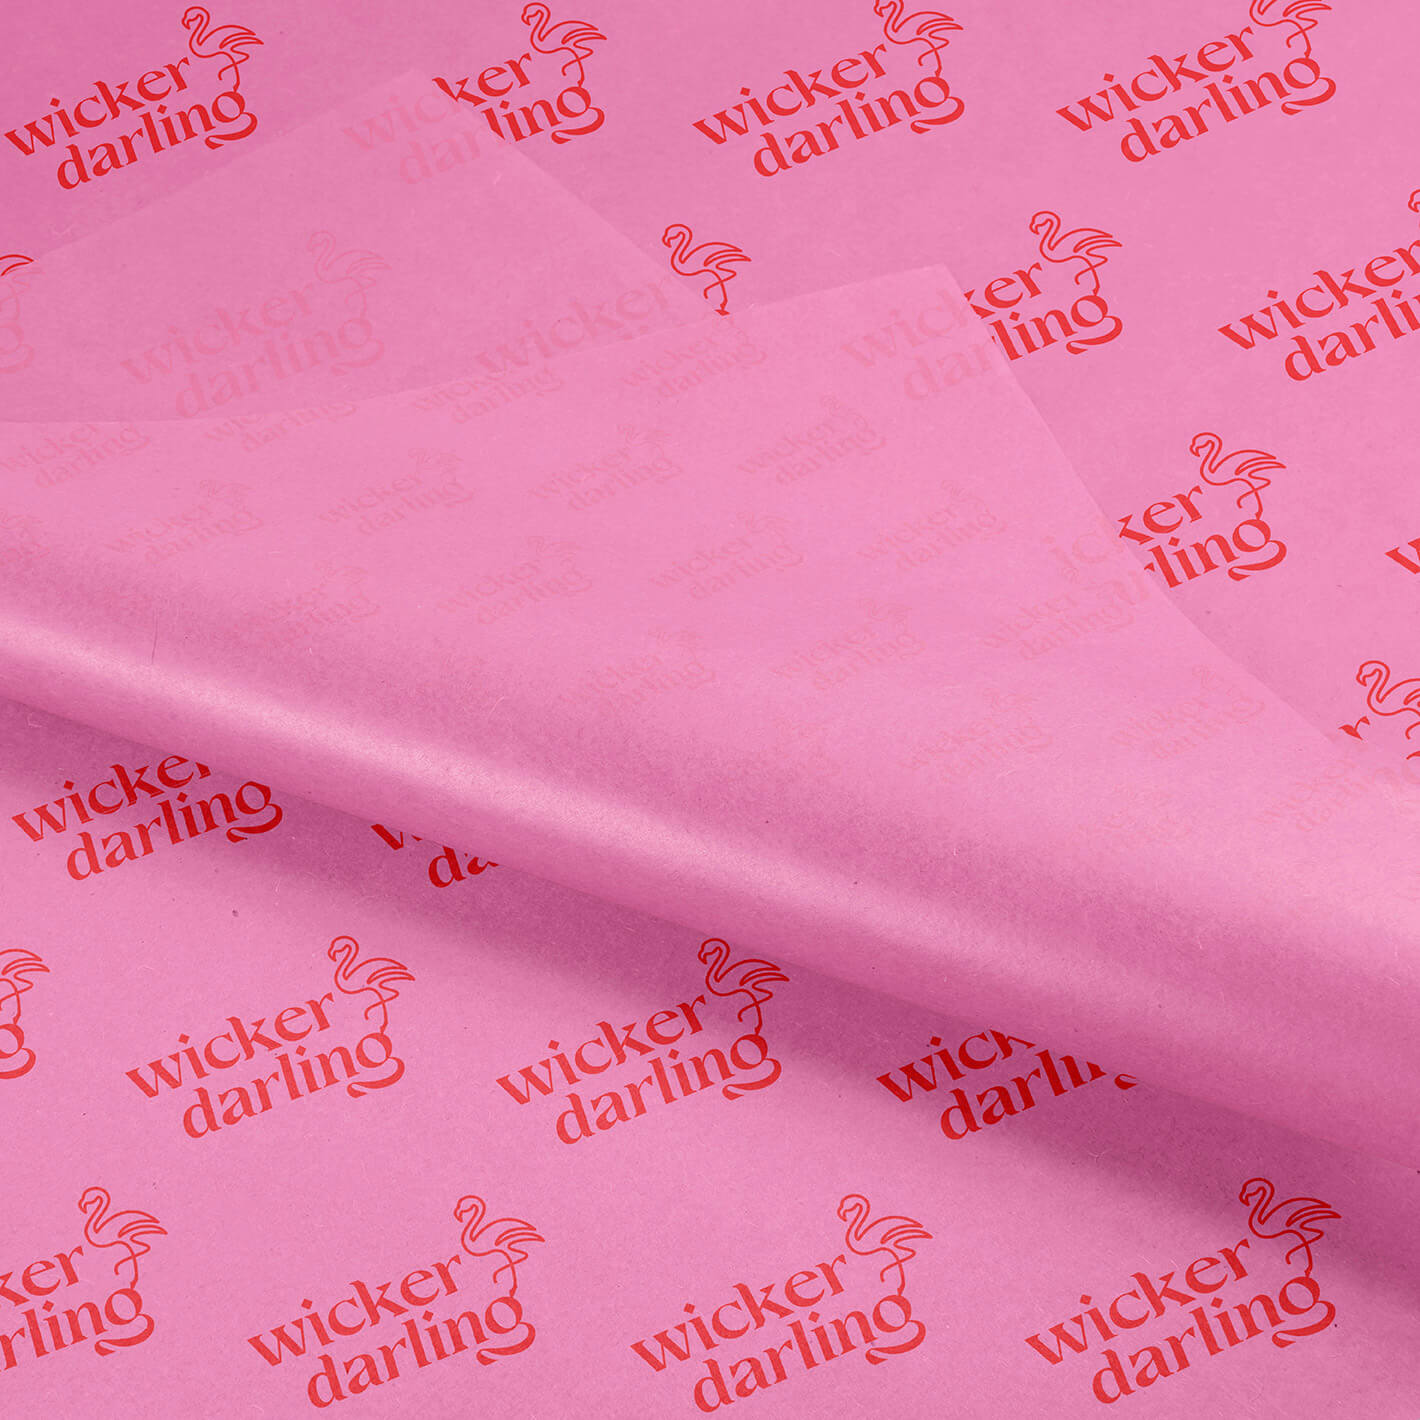 Pink and red wicker darling custom tissue paper design